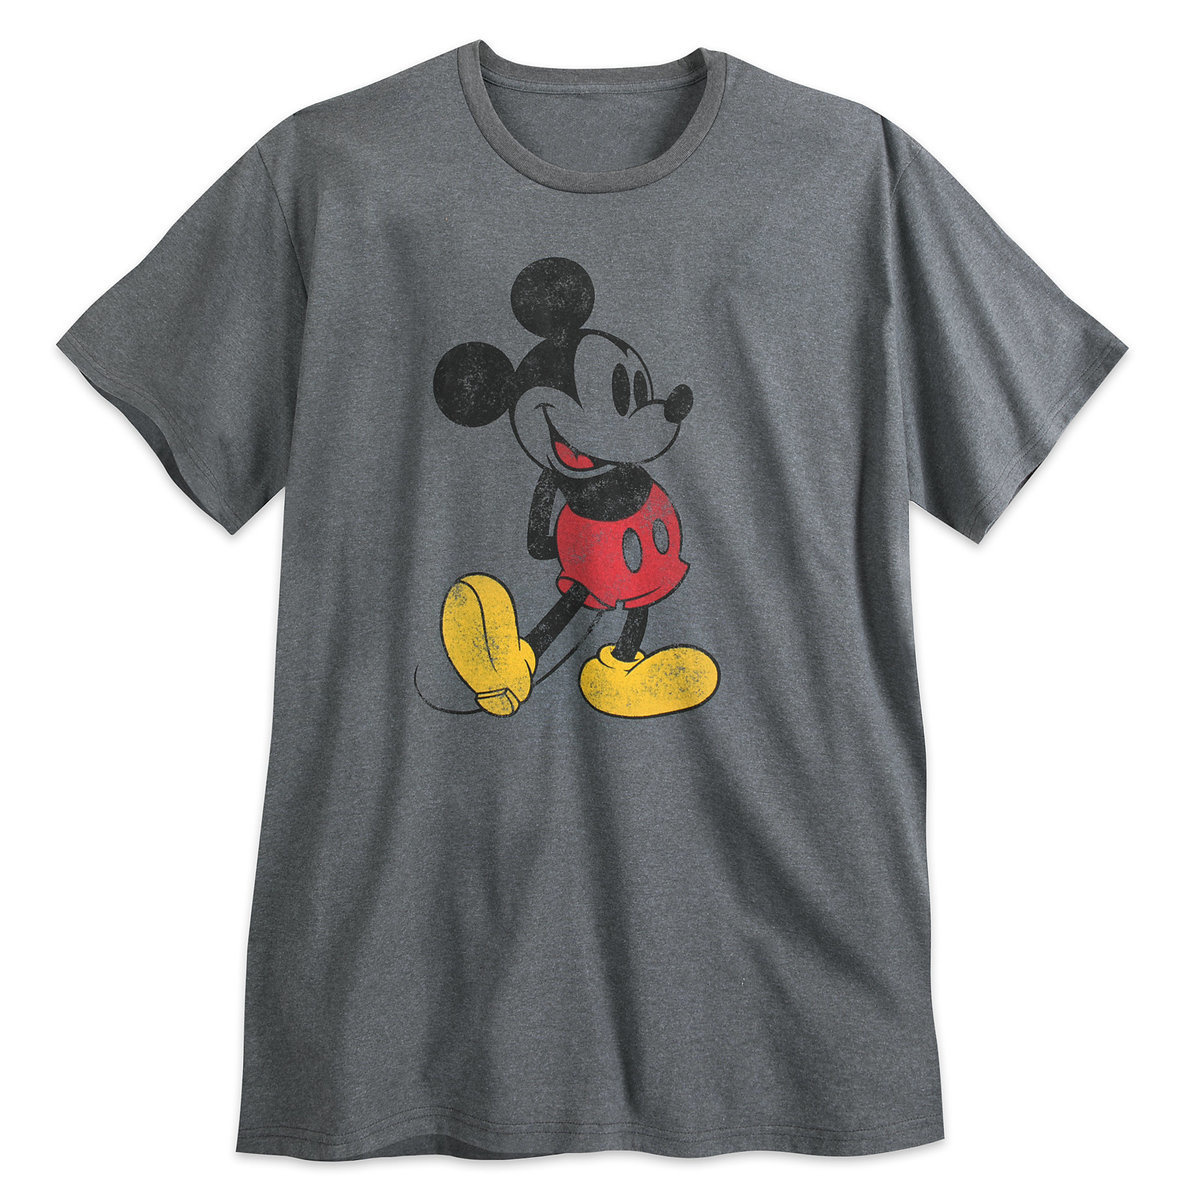 88020a88 Product Image of Mickey Mouse Classic Tee for Men - Plus Size # 1